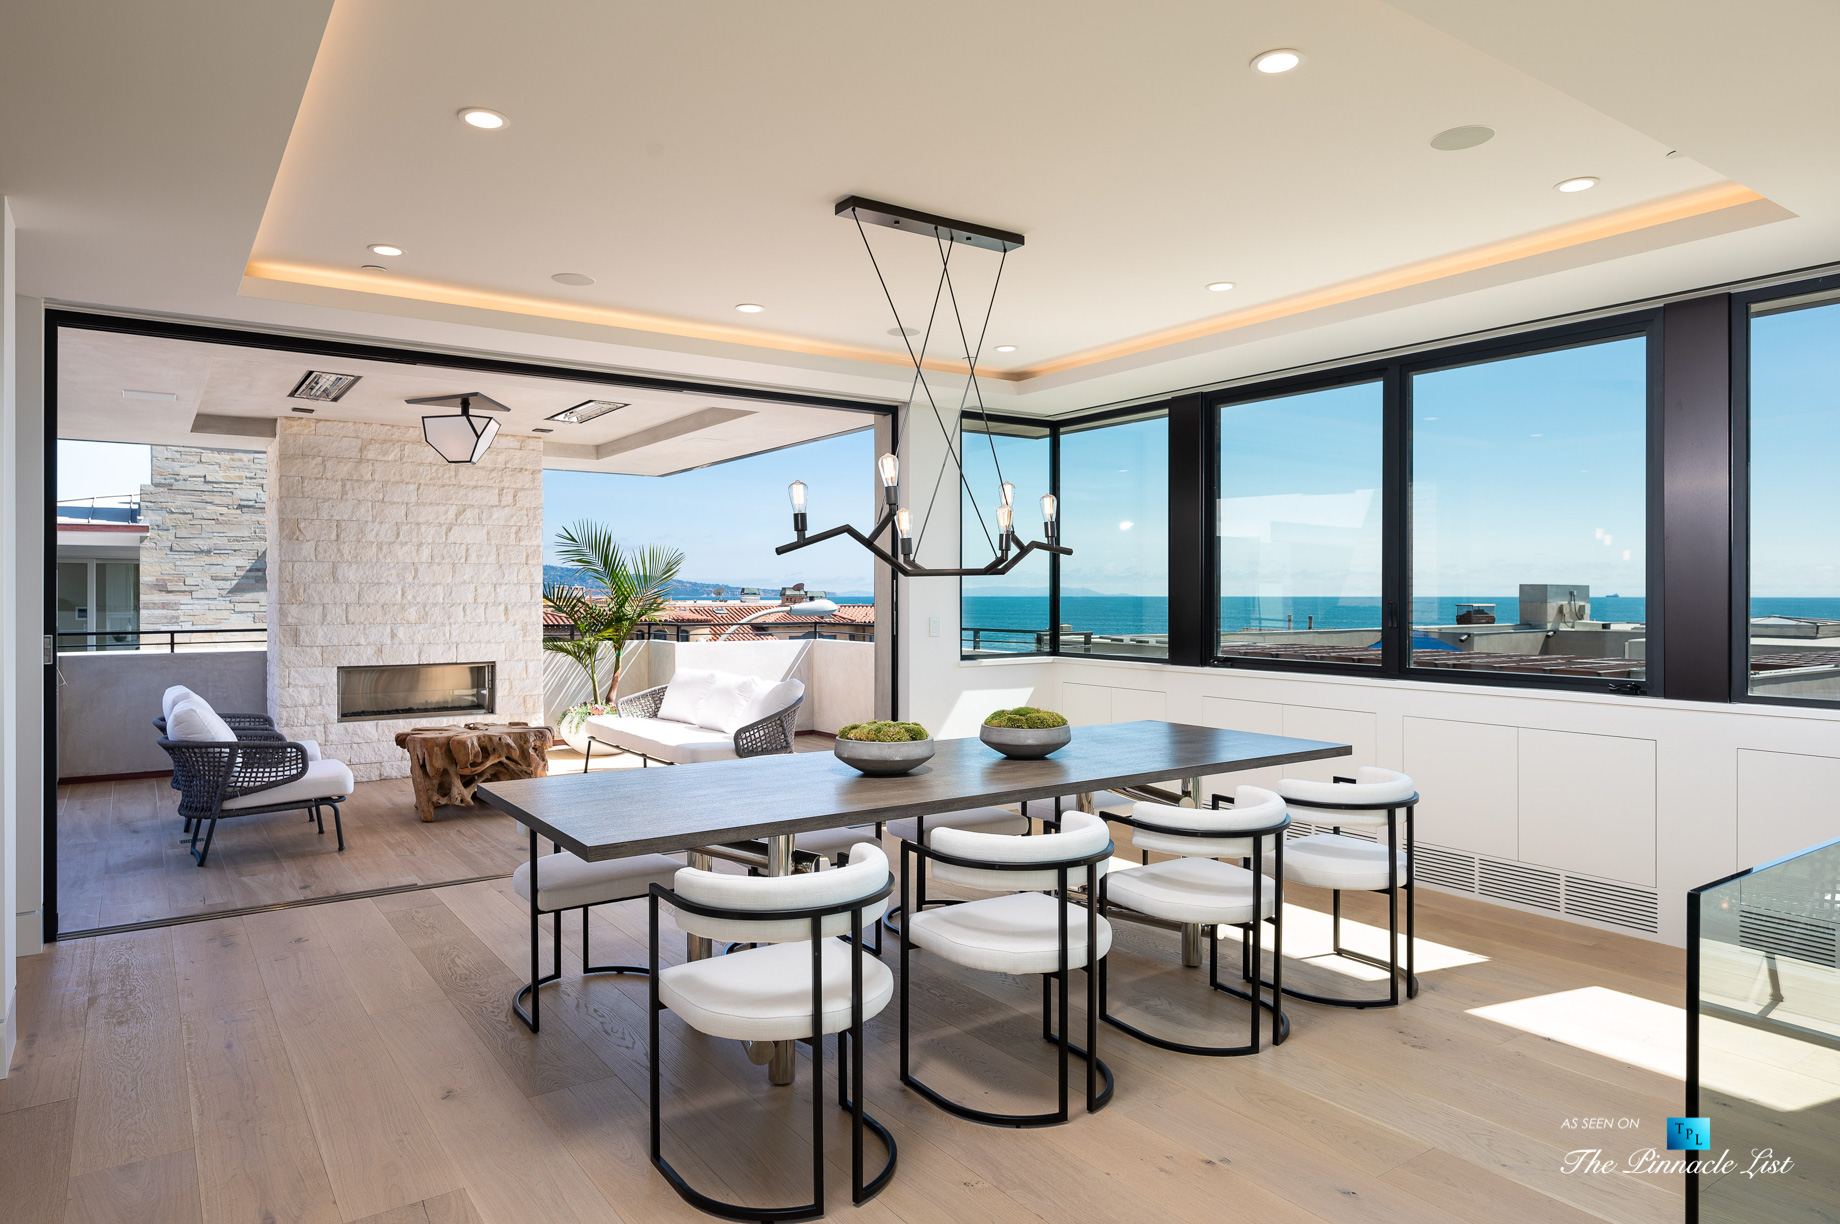 2016 Ocean Dr, Manhattan Beach, CA, USA - Balcony and Dining Room View - Luxury Real Estate - Modern Ocean View Home